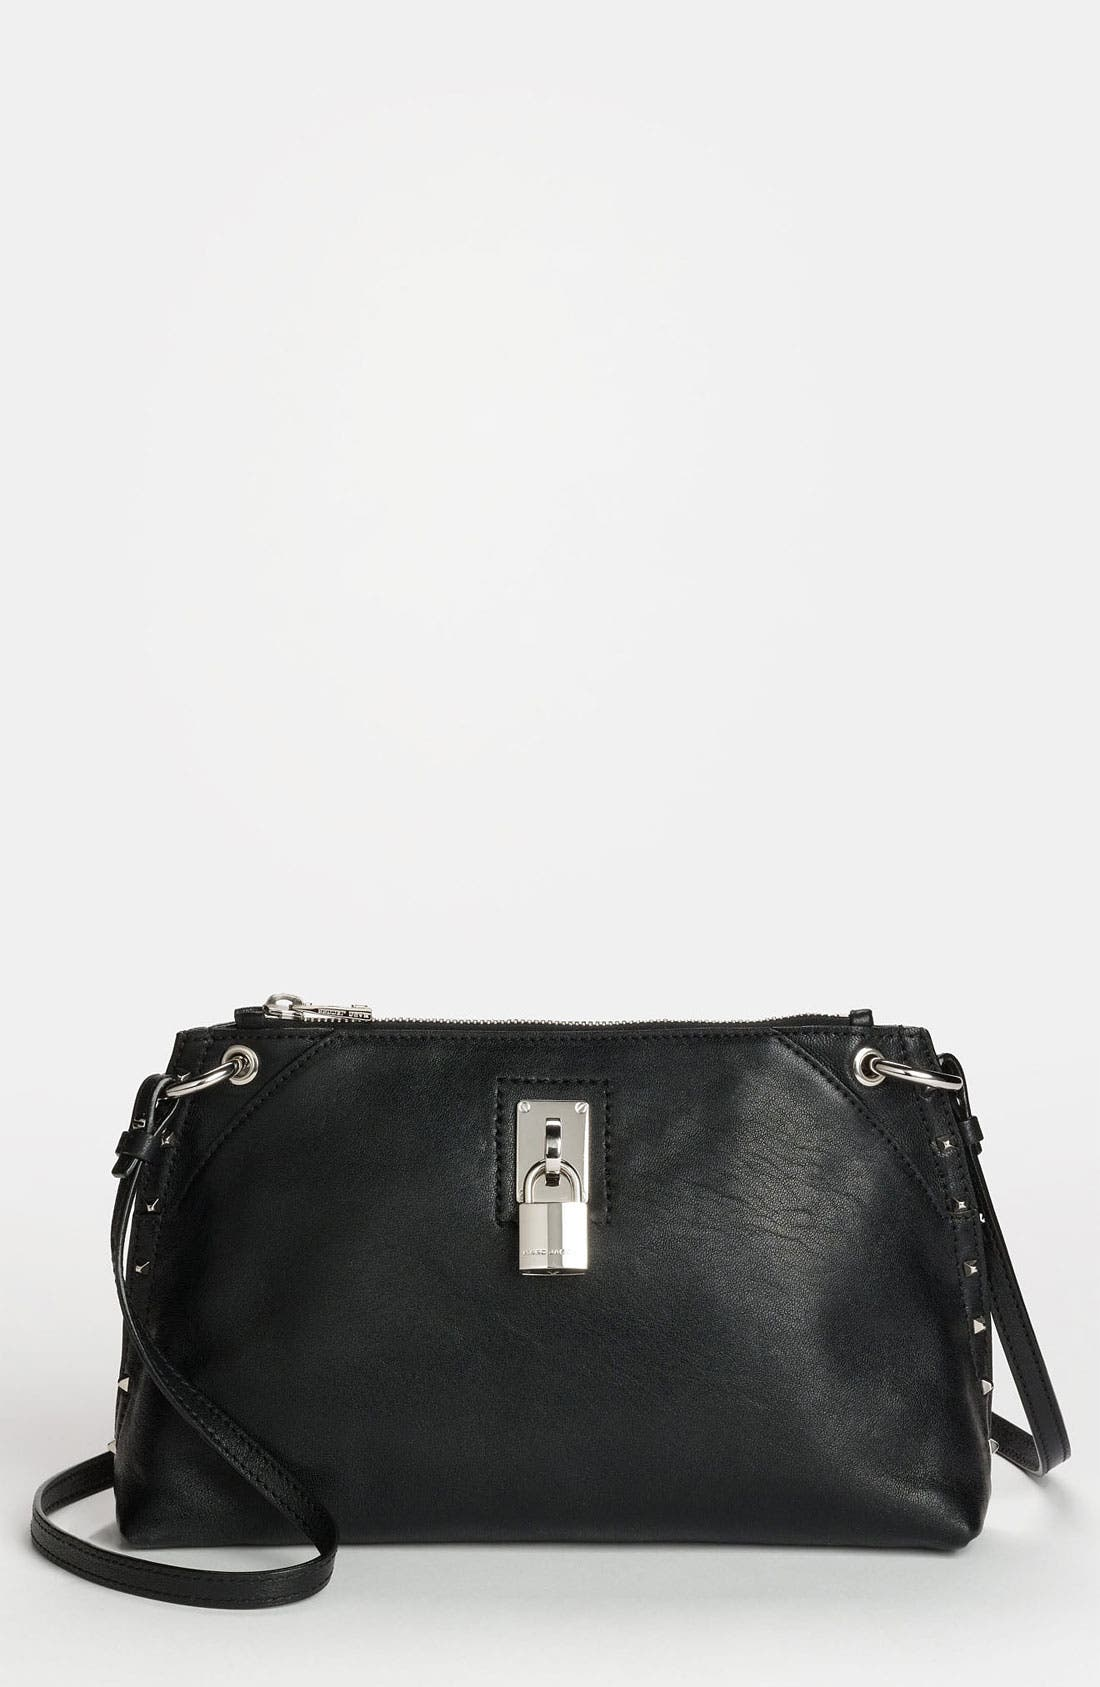 Main Image - MARC JACOBS 'Paradise Sweetie' Leather Crossbody Bag